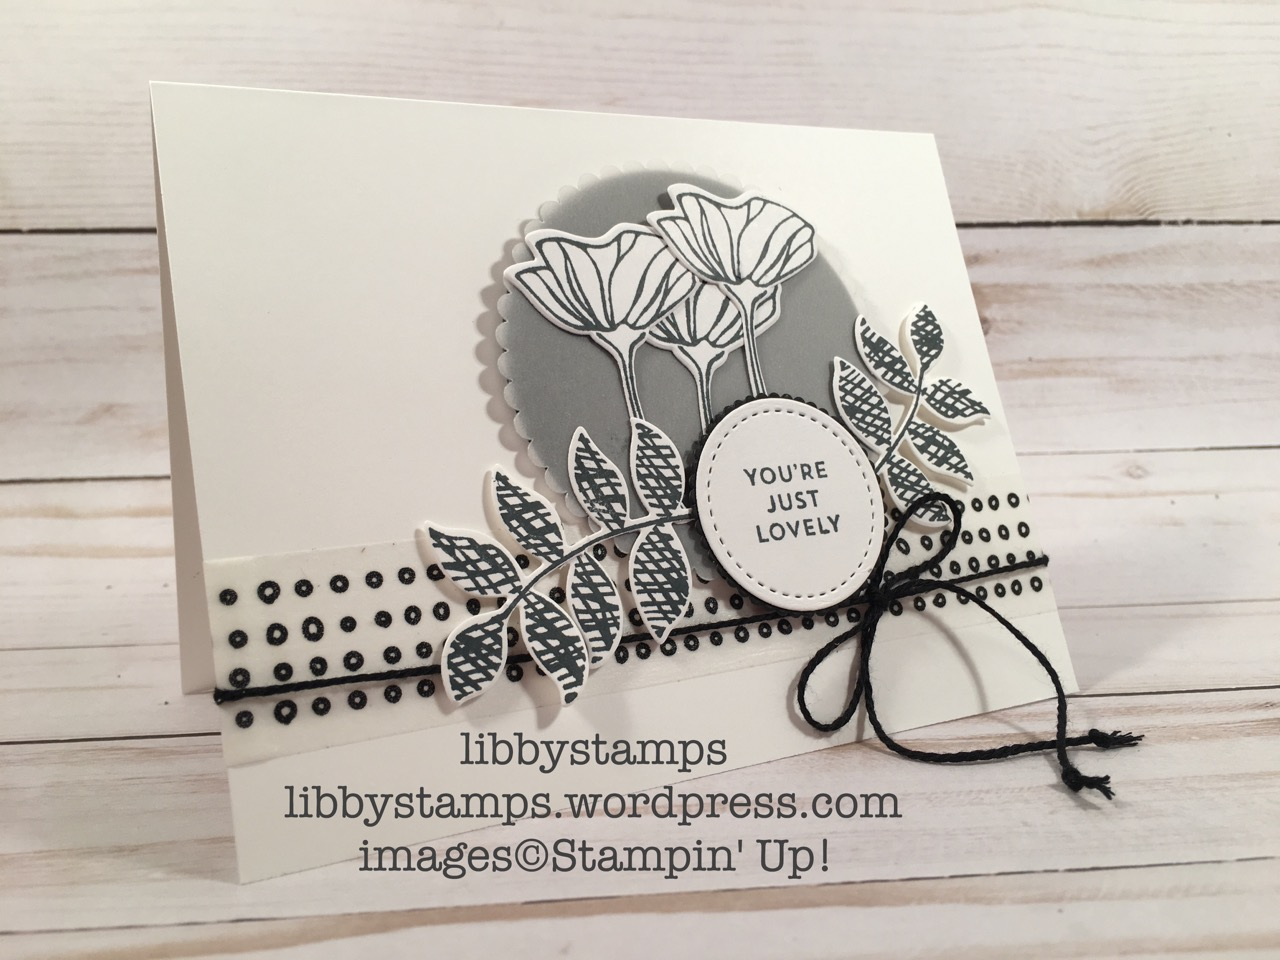 libbystamps, stampin up, Oh So EclecticBundle, Oh So Eclectic, Oh So Eclectic, Pick a Pattern Washi Tape, CCMC, black & white, 2017-2018 Catalog